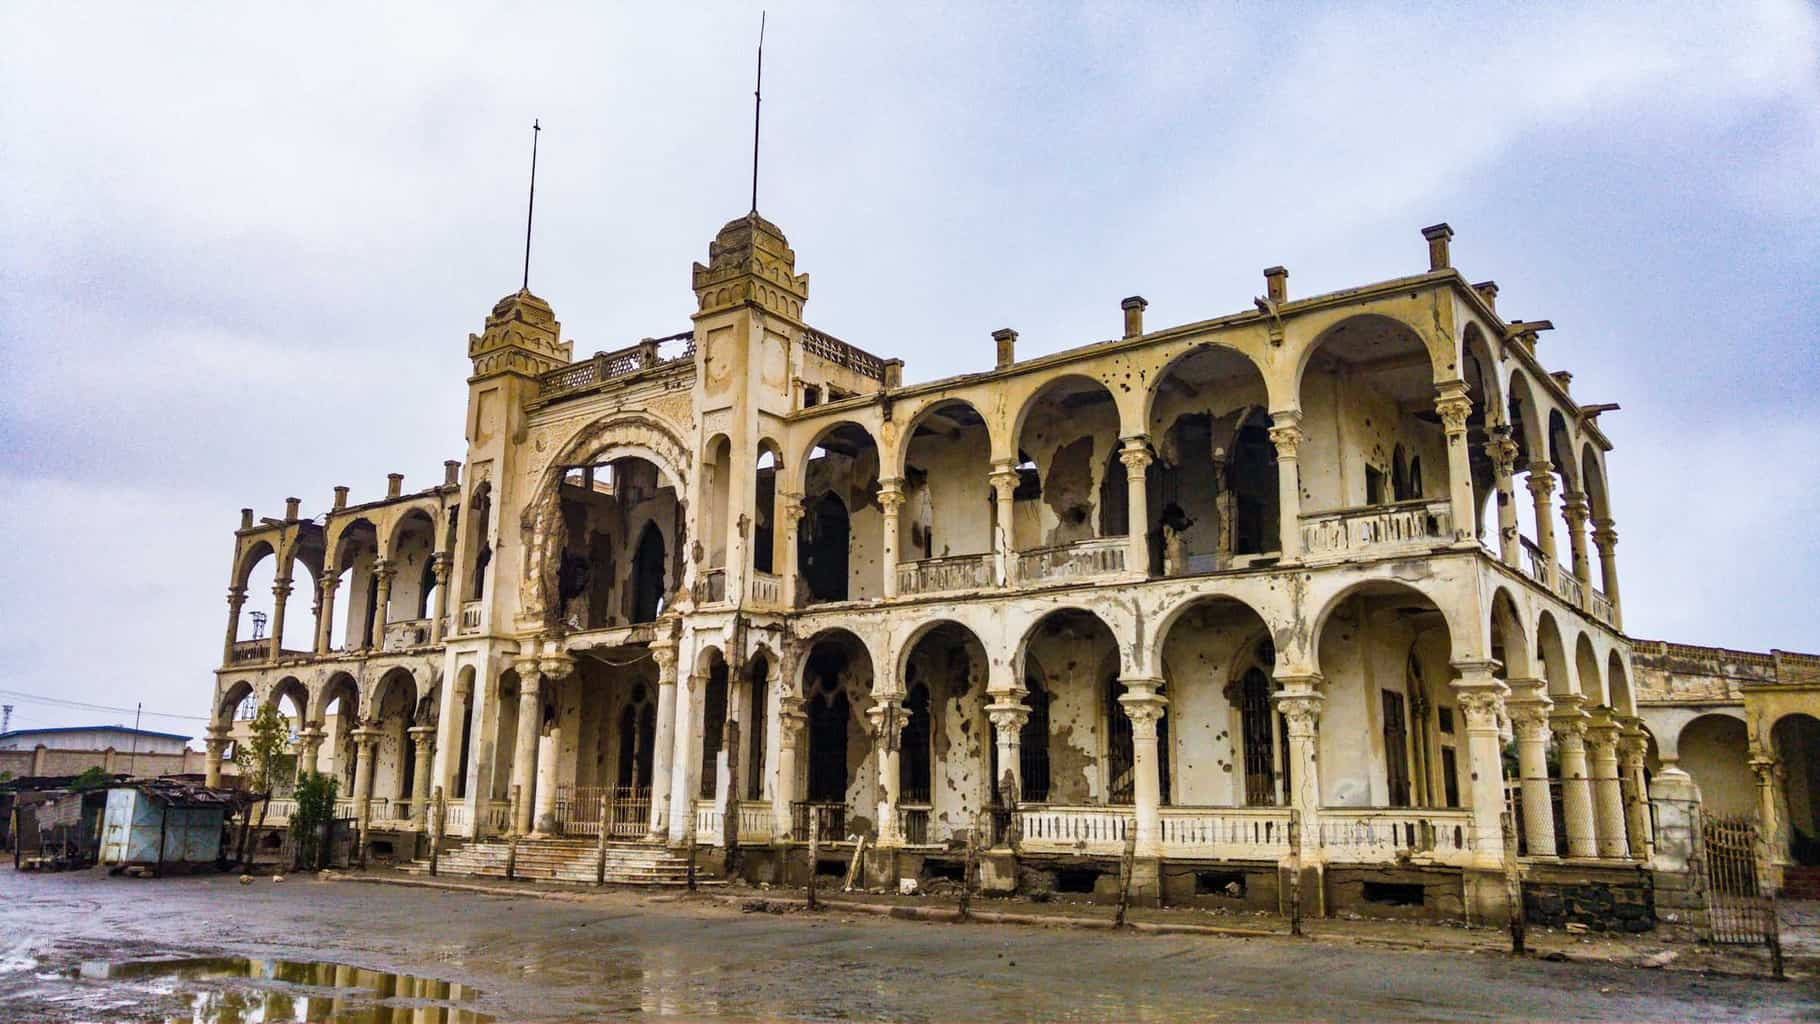 The old bang building in Massawa.